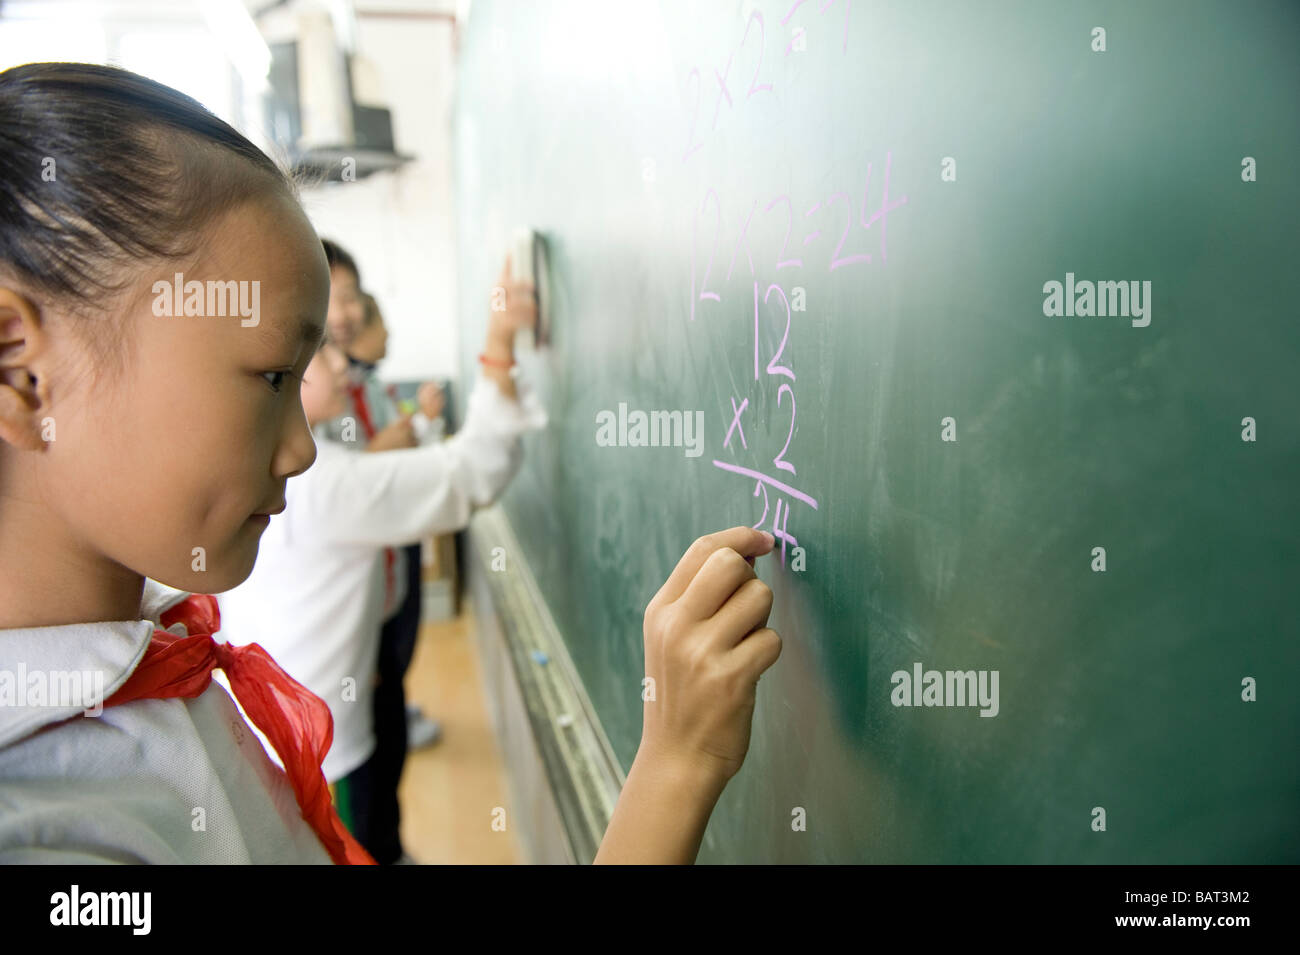 Young student practicing math on a chalkboard. - Stock Image